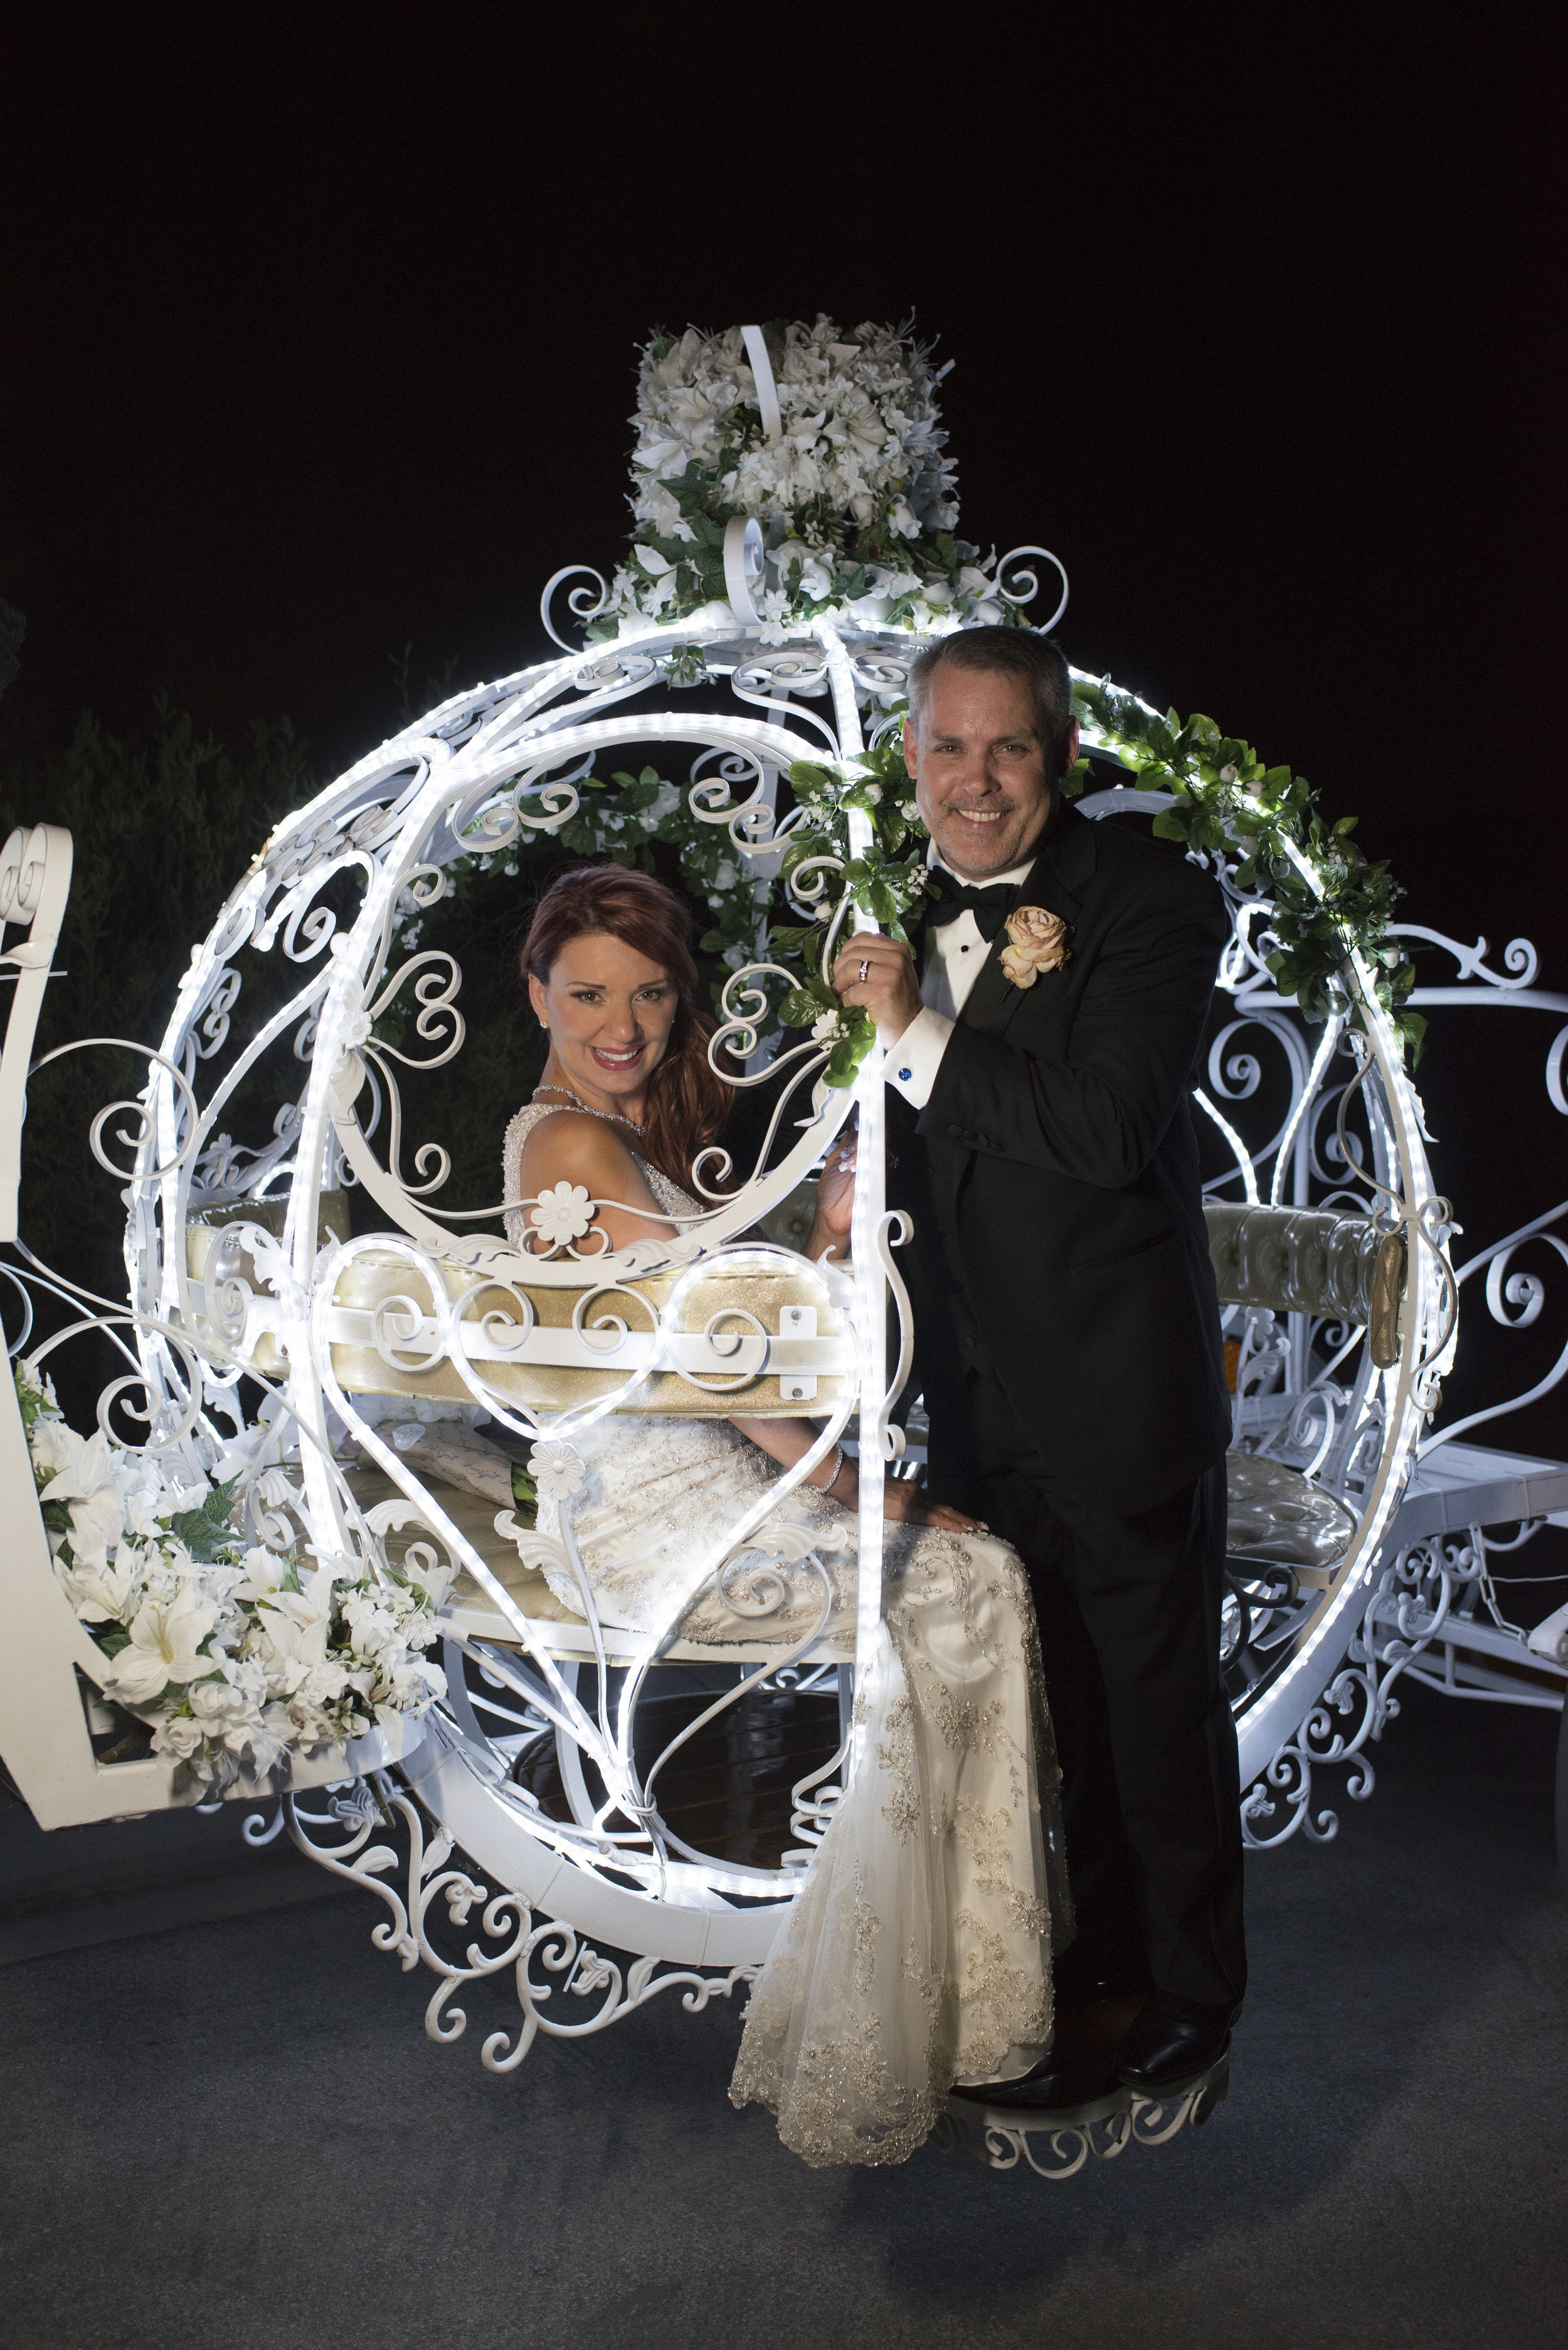 Cinderella carriage for leaving the wedding. Horse drawn carriage for bridal get away. Luxury Las Vegas Wedding Planner Andrea Eppolito. Image by AltF Photography.